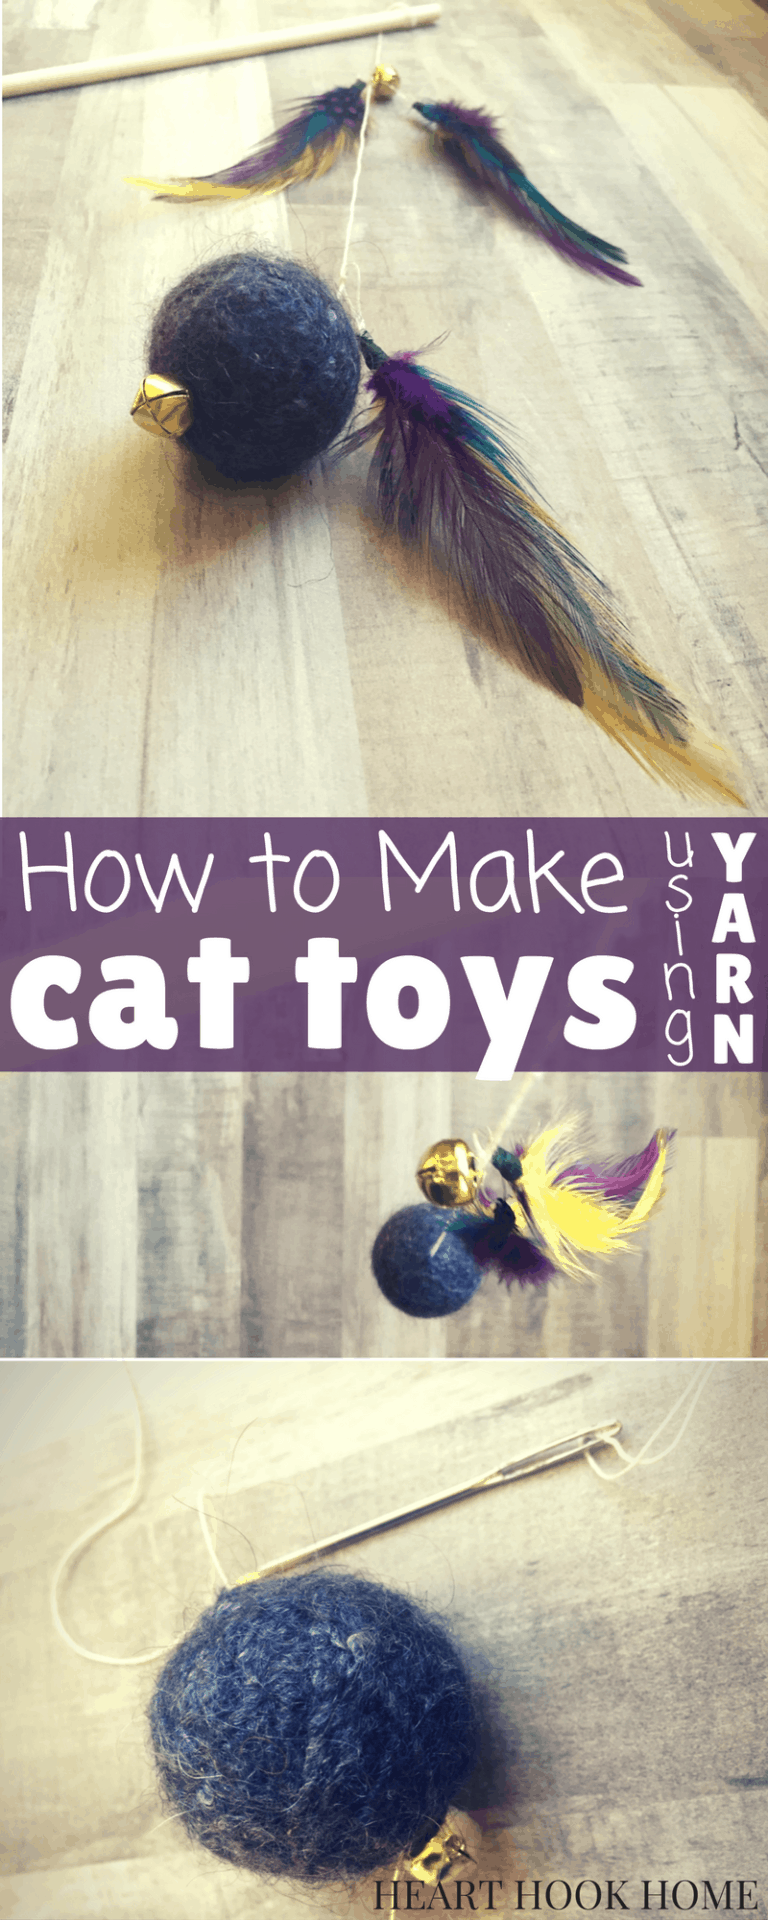 How to Make Cat Toys Using Yarn and Felting